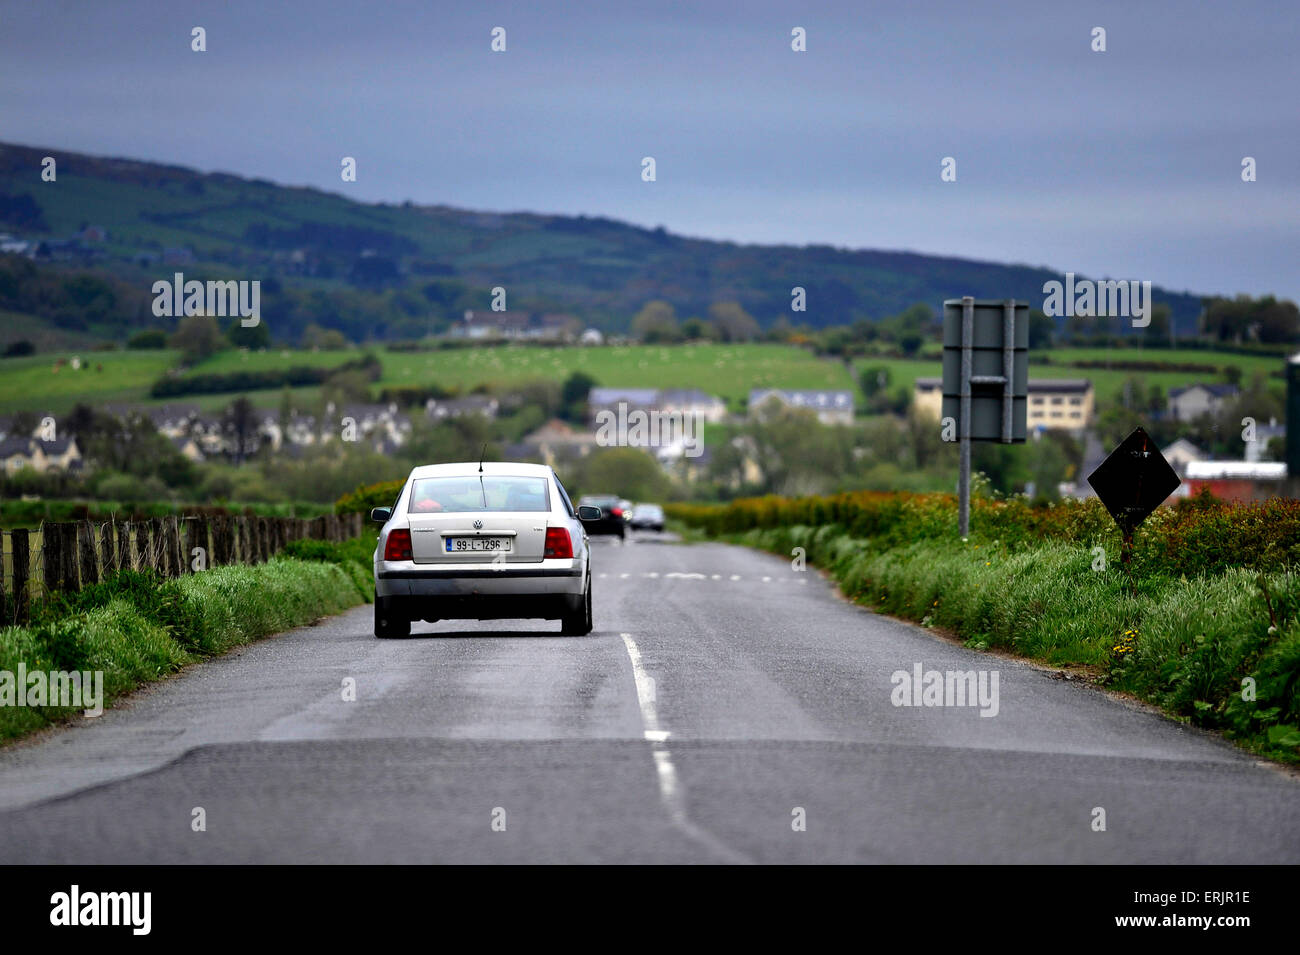 Narrow country road at Burt, County Donegal, Ireland - Stock Image